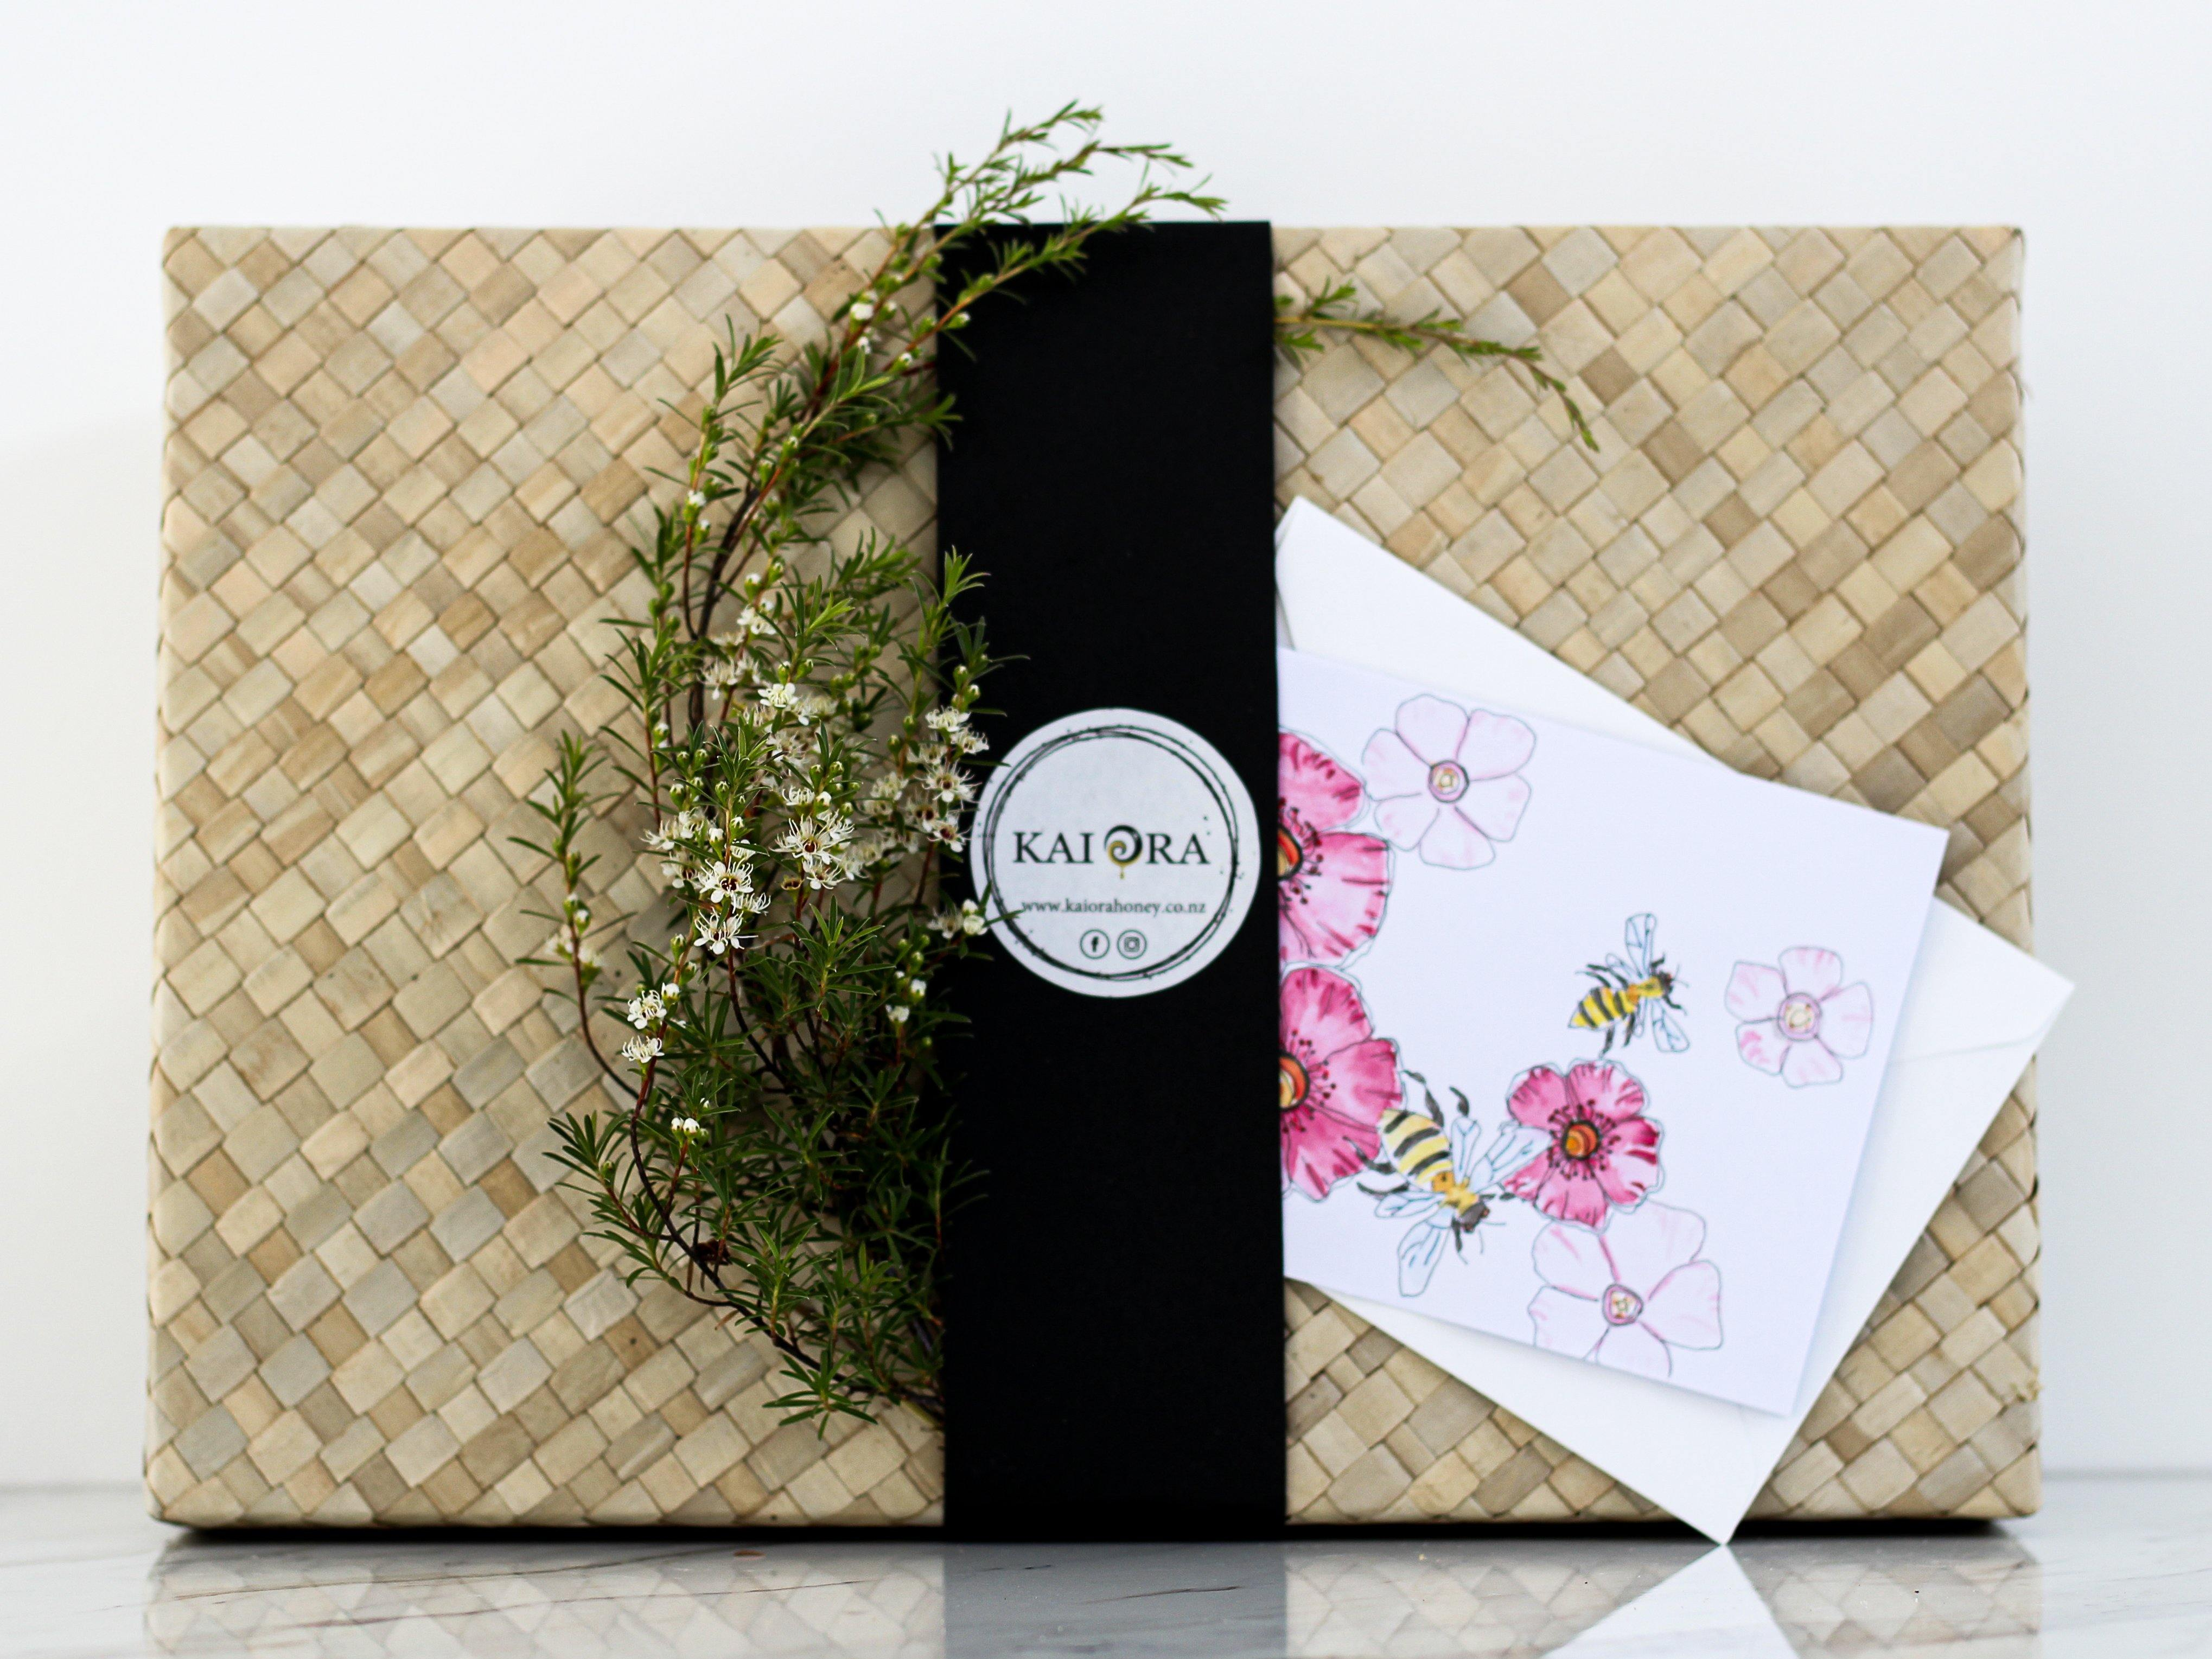 Kai Ora Honey Hana Botanicals Giftbox #gift